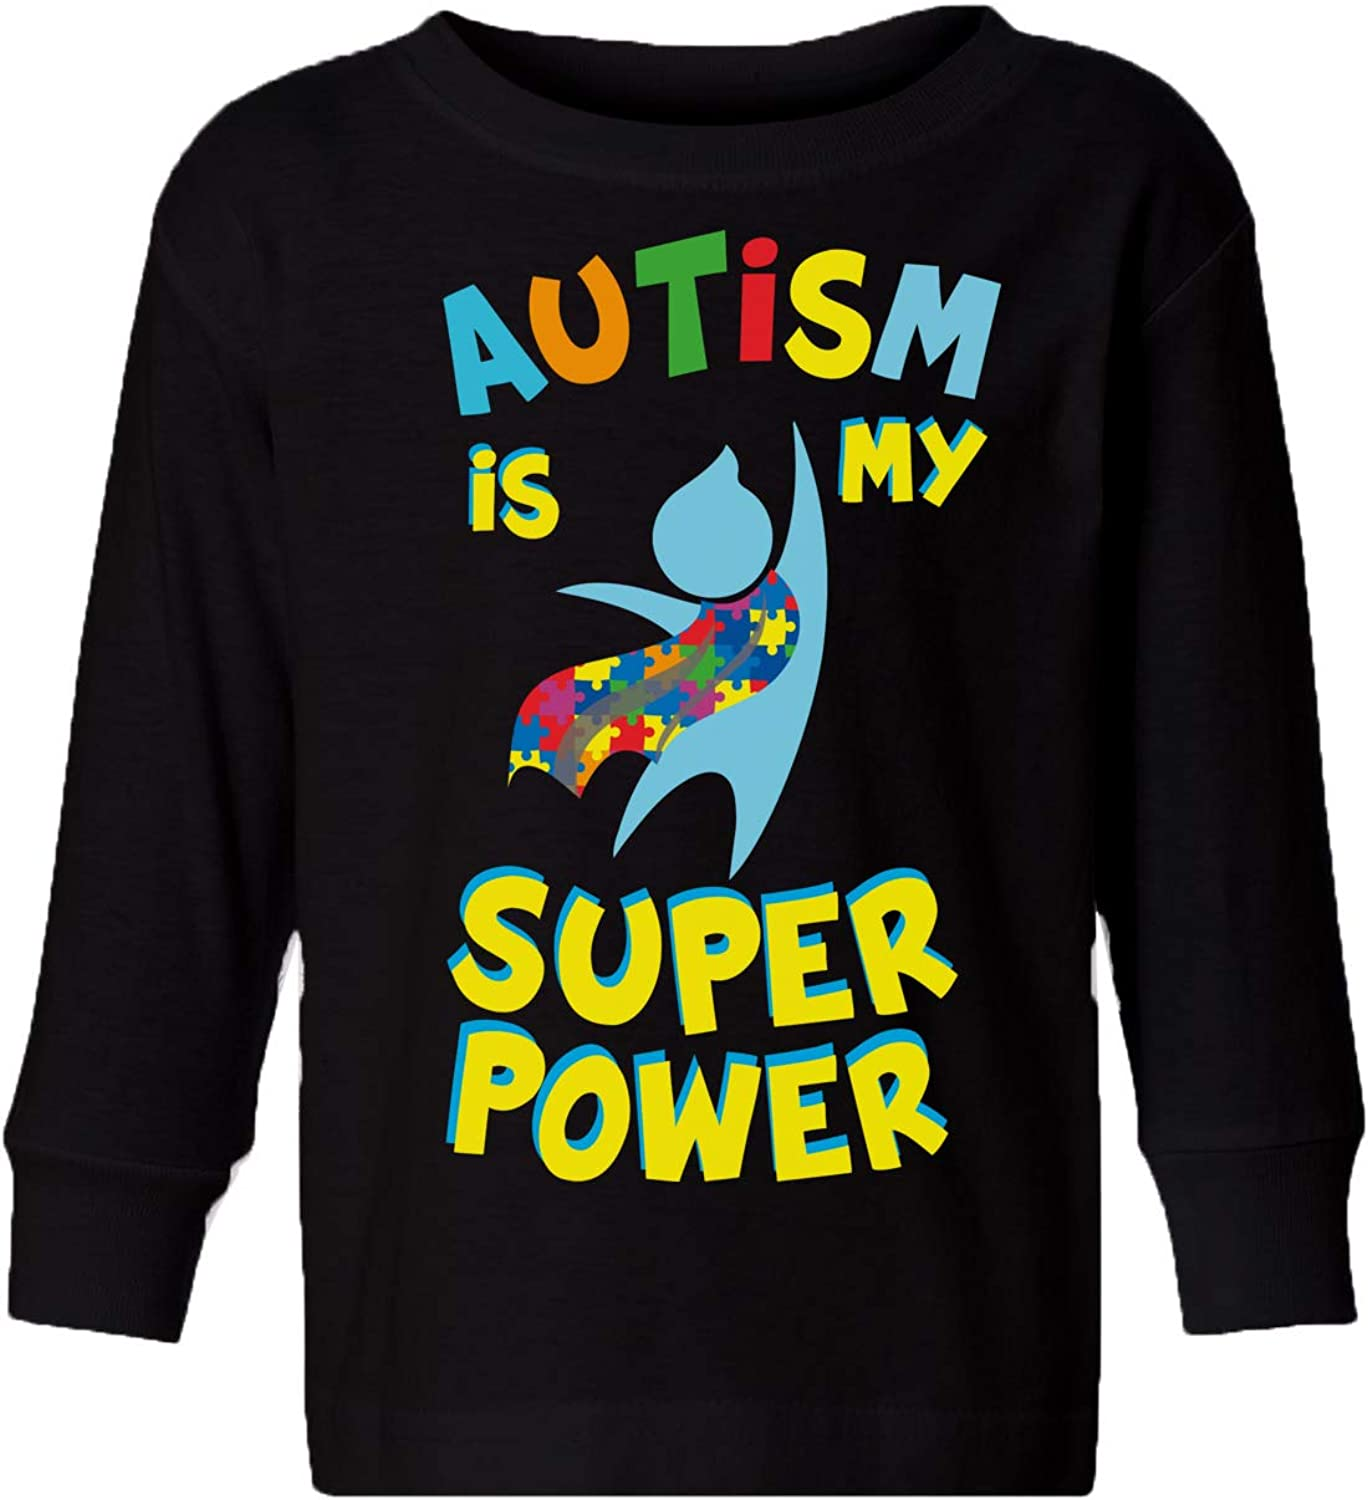 Awkward Styles Autism Toddler Long Sleeve Shirt Autism is My Super Power Kids T-Shirt